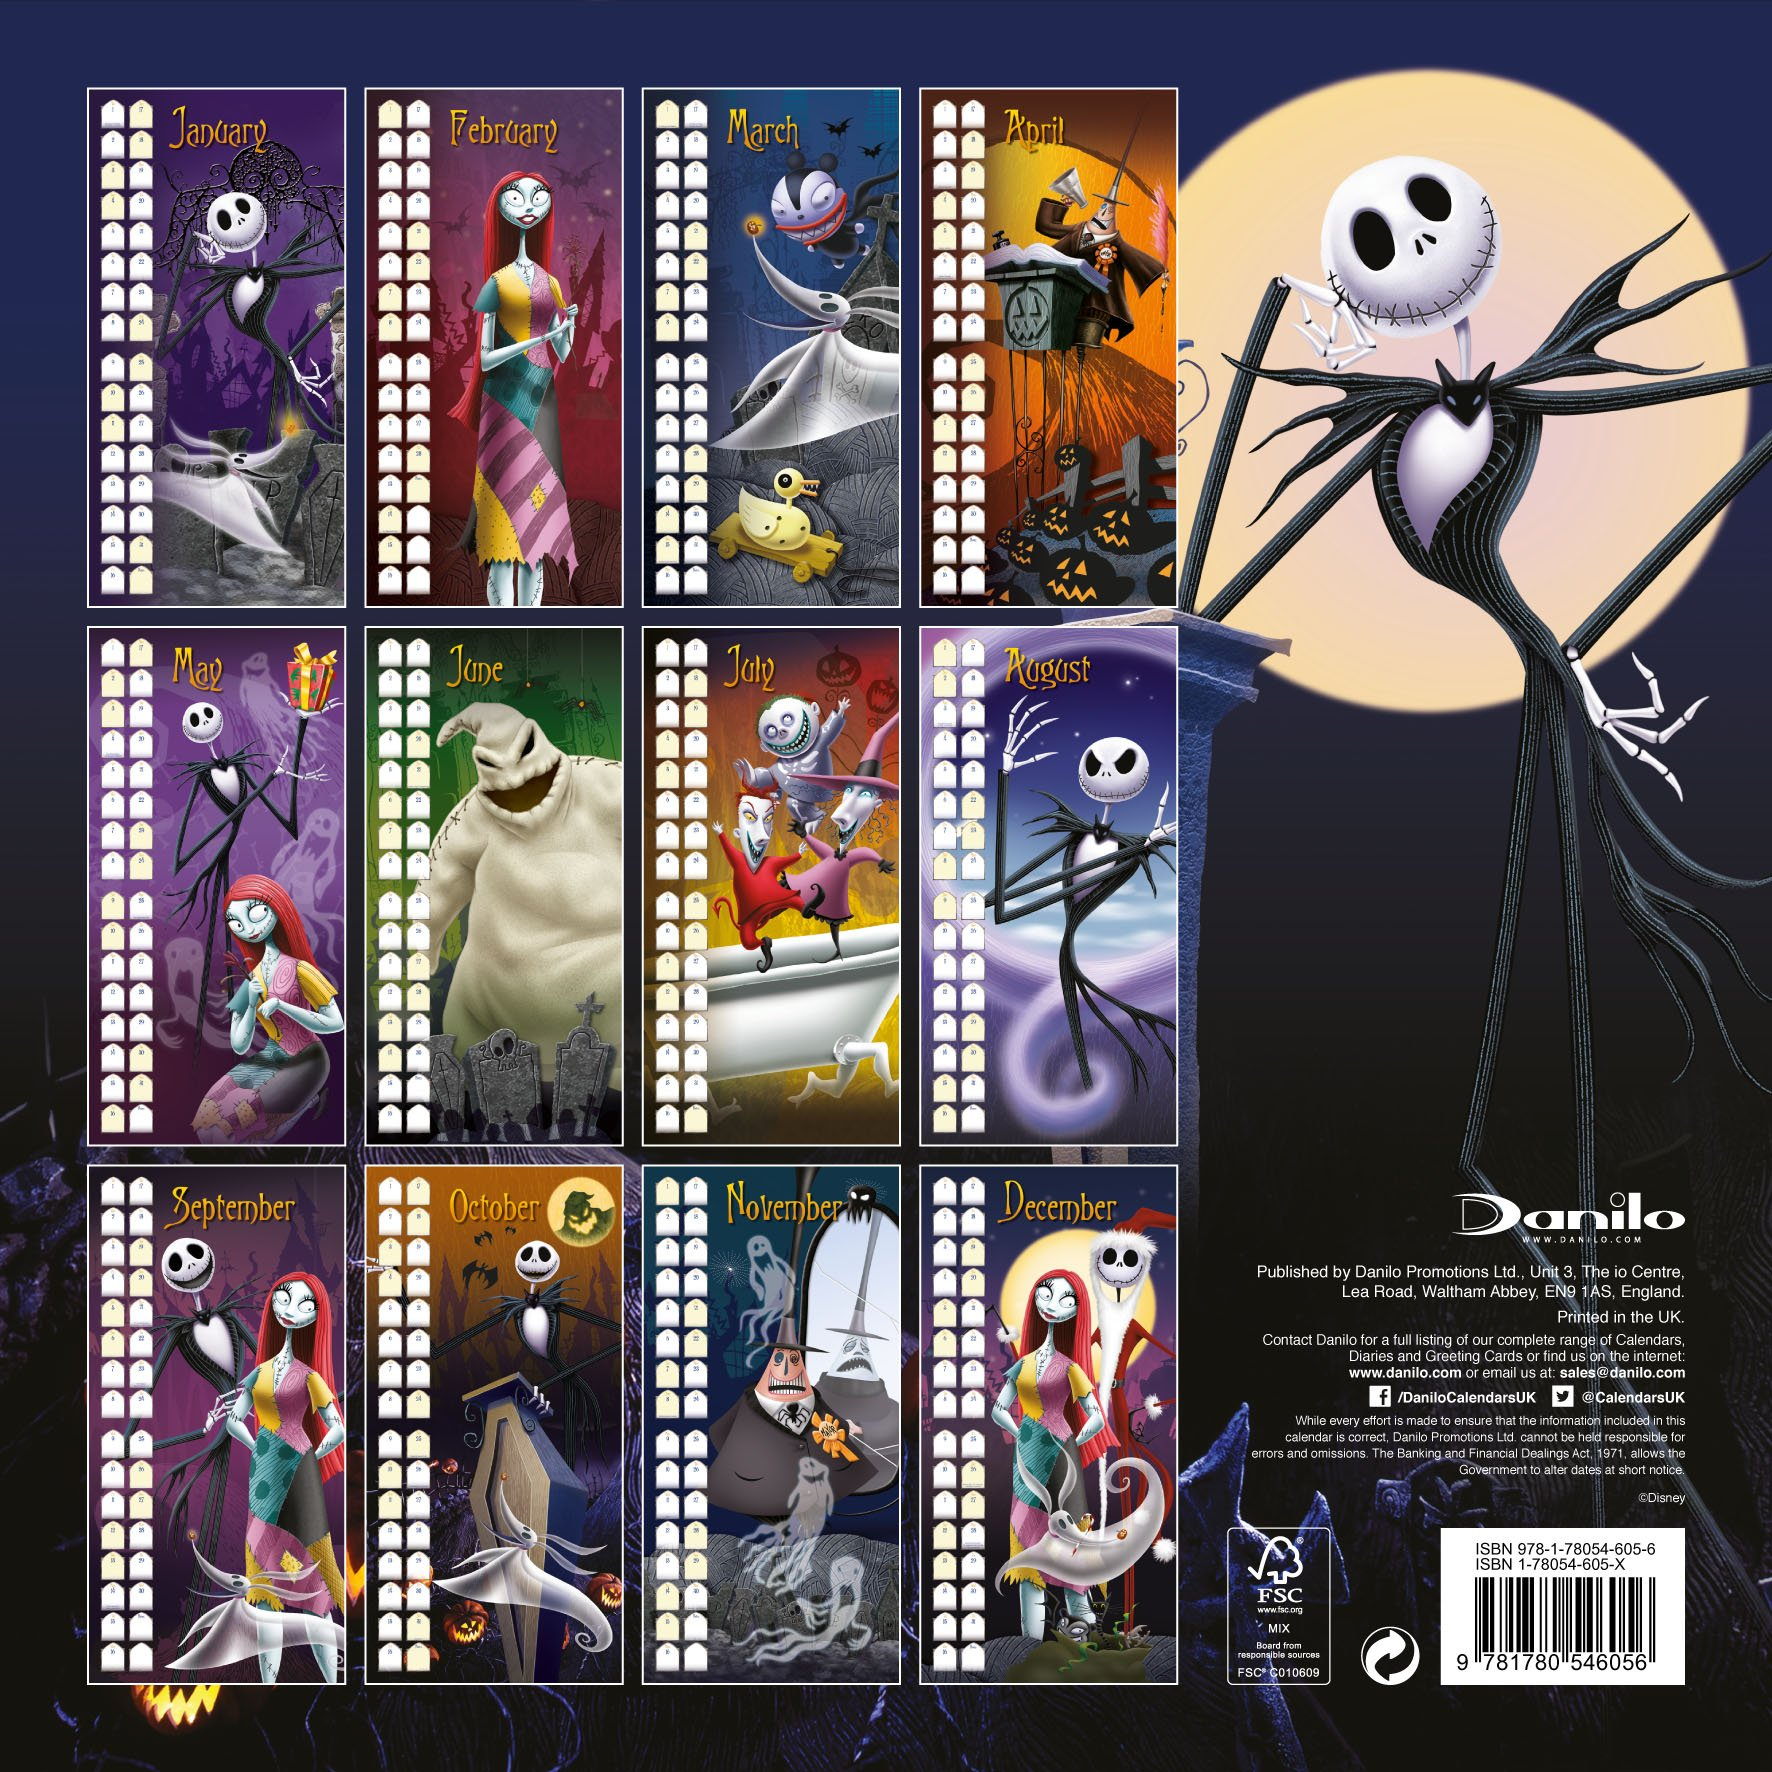 Official Nightmare Before Christmas Calendar 2015: 9781780546056 ...